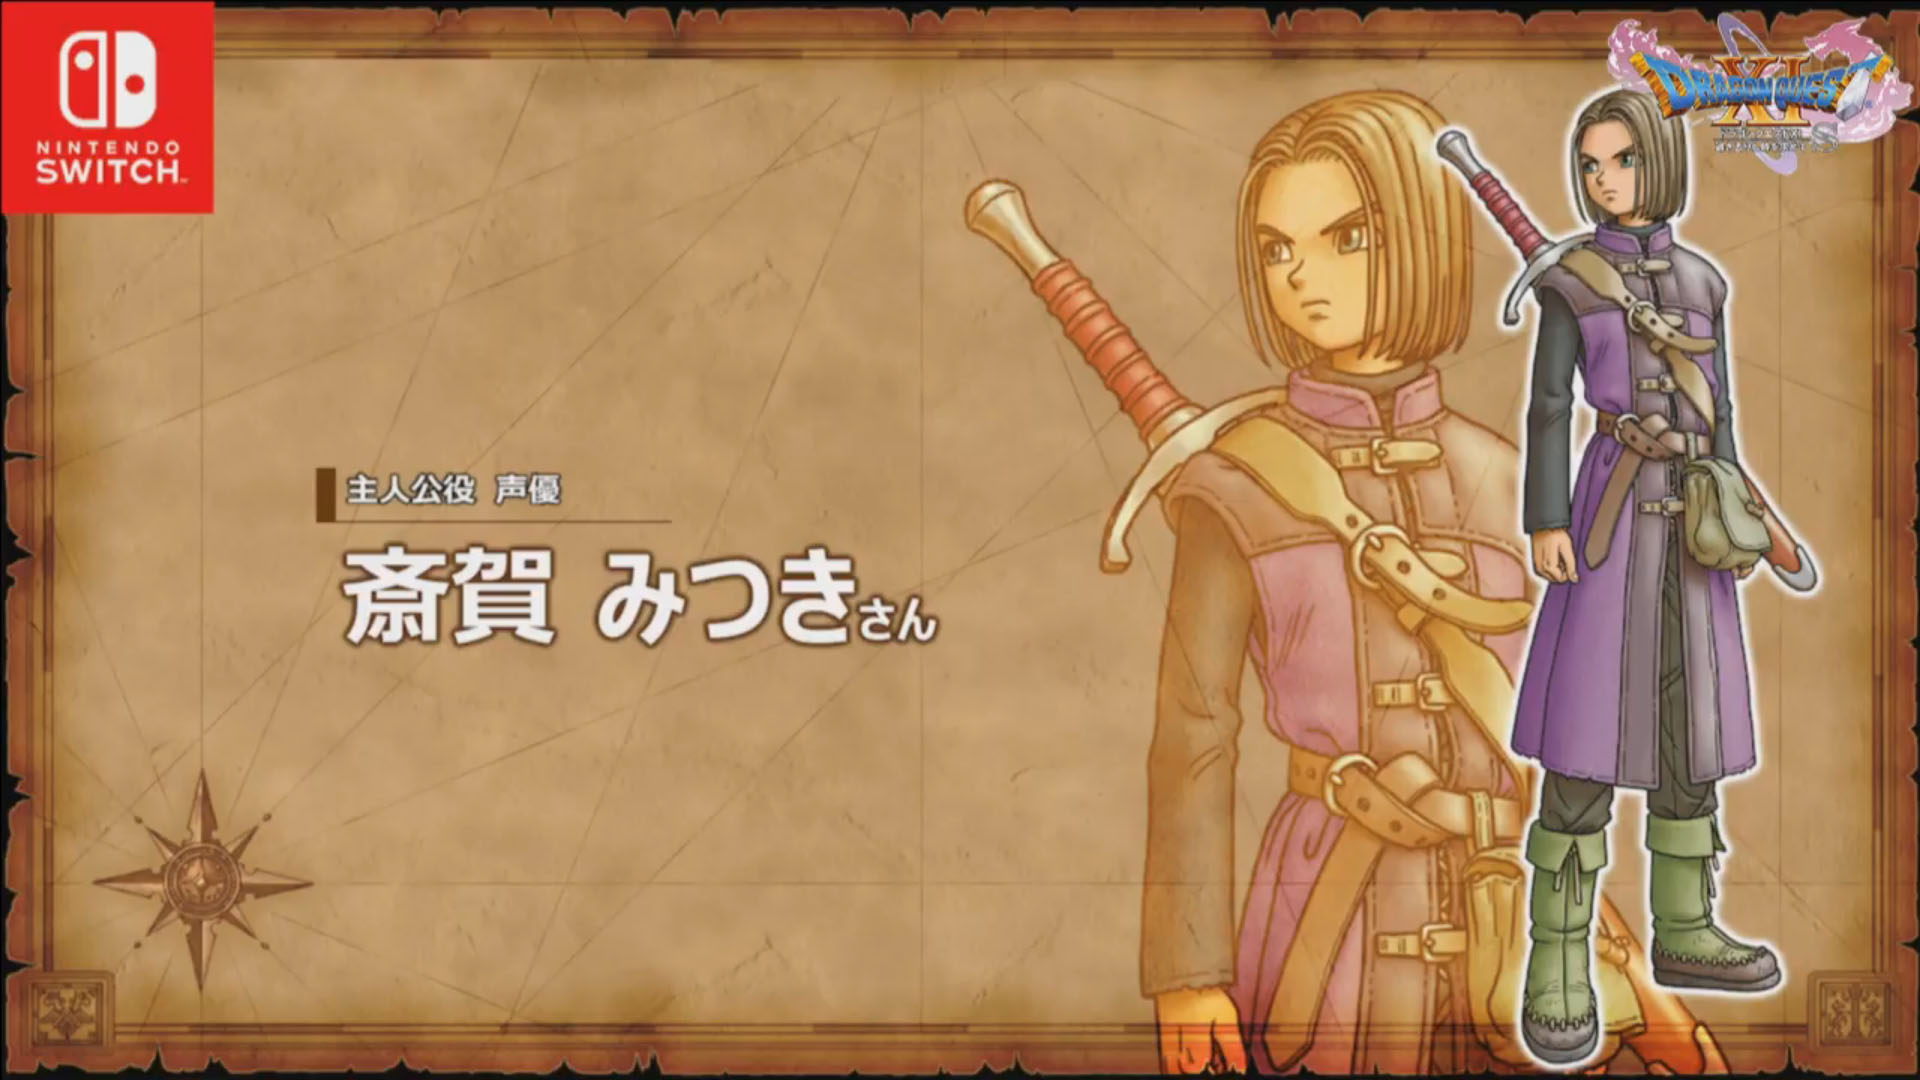 Dragon Quest XI S introduces Japanese voice actors for the